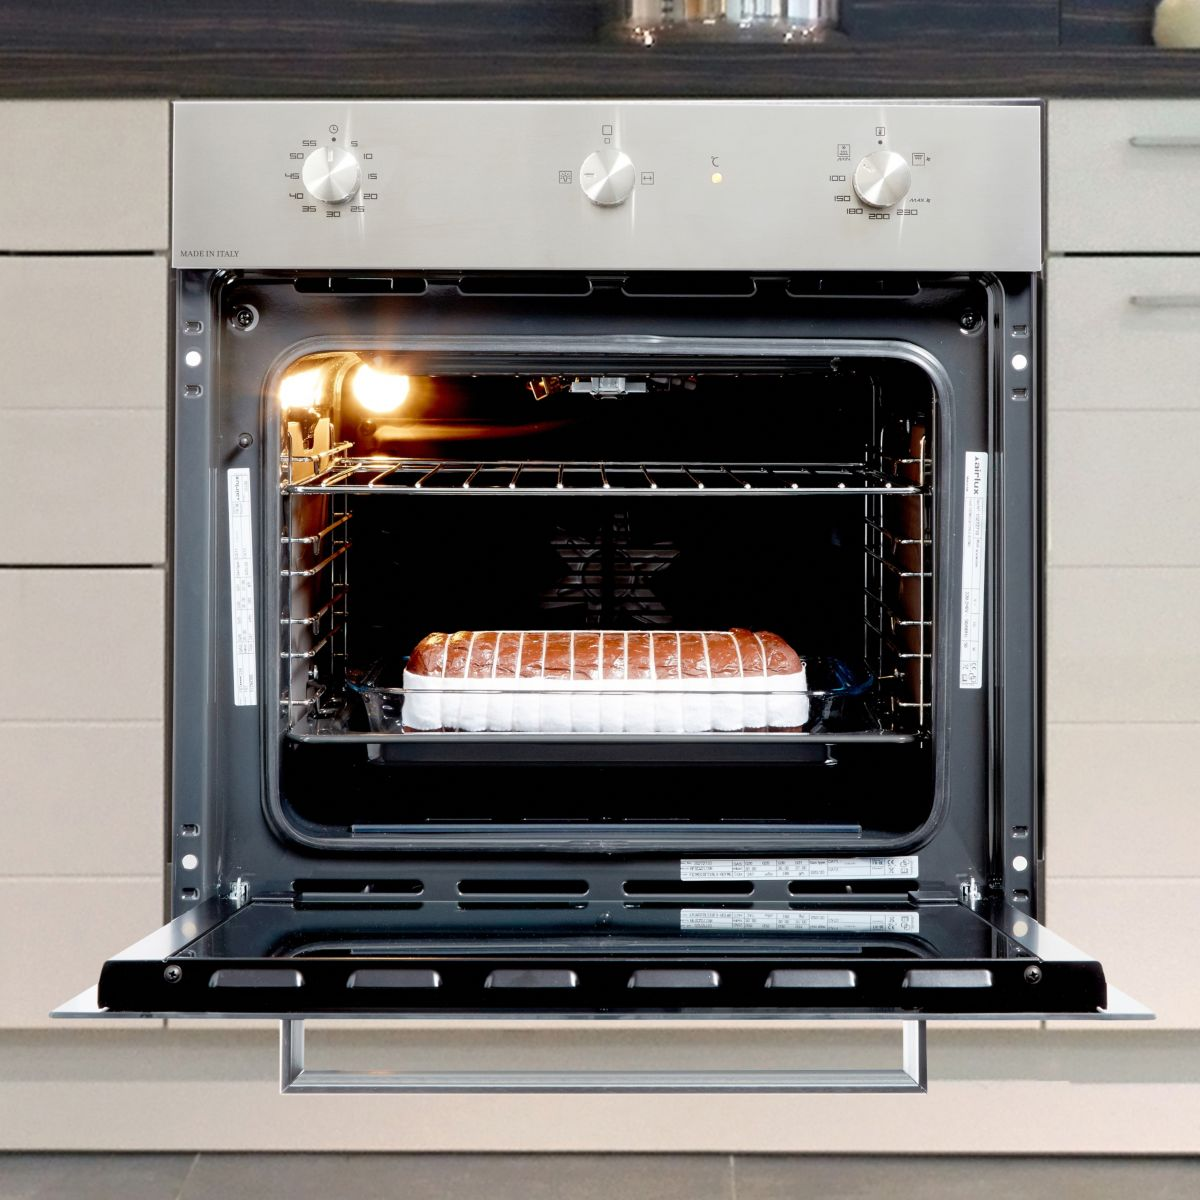 Four convection naturelle airlux afscw21ixn - livraison offerte : code livpremium (photo)